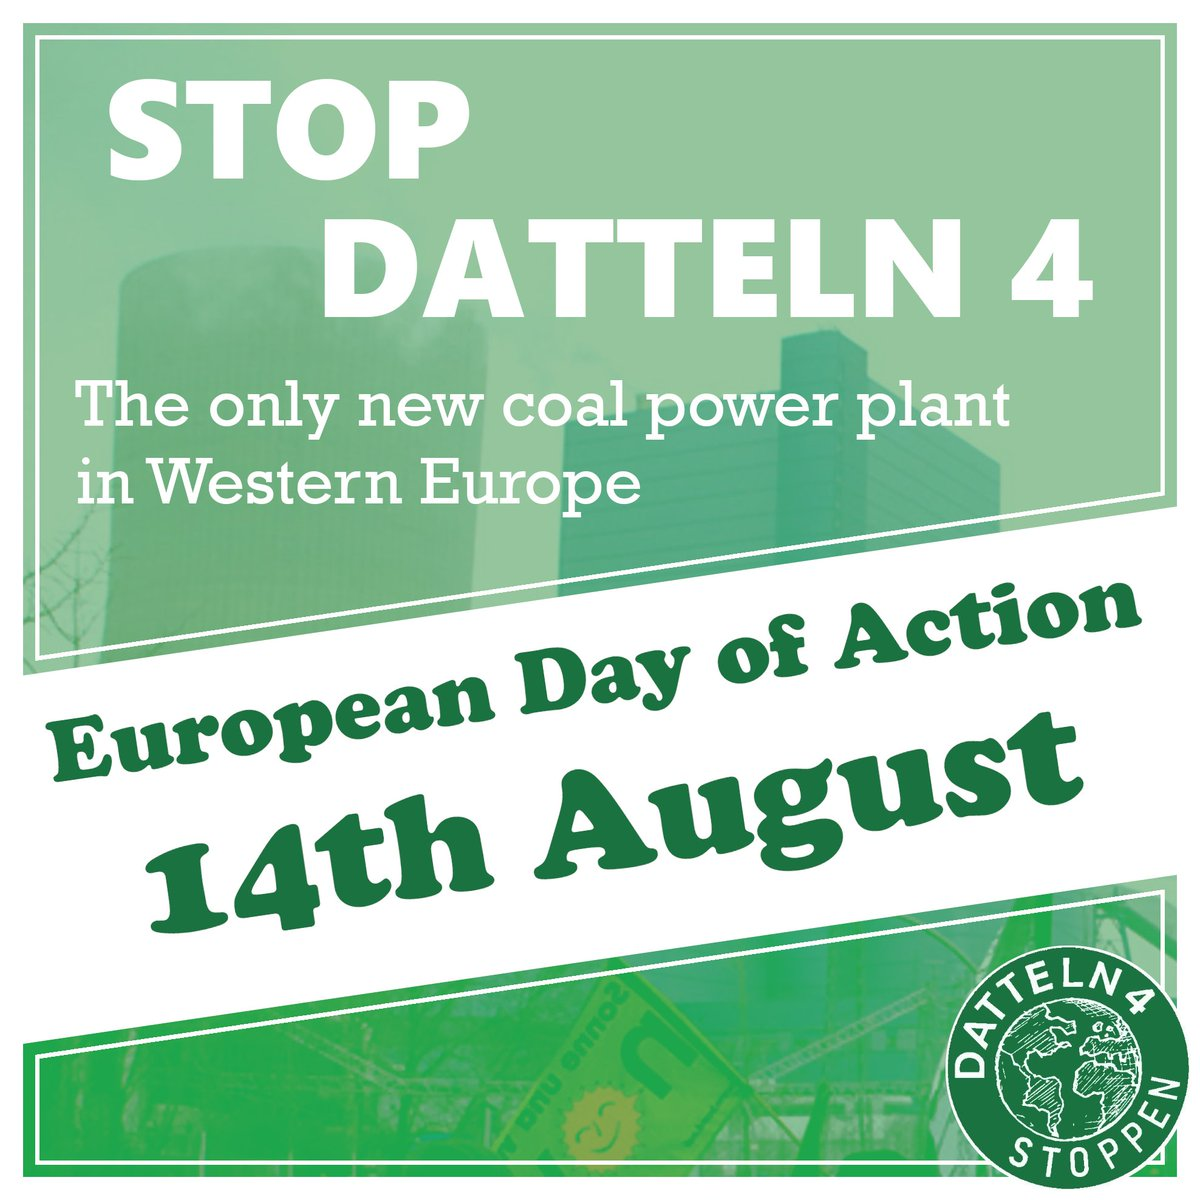 🌍EUROPEAN DAY OF ACTION🌍  💢14TH AUGUST!💢SAVE THE DATE!💢  💚#XR, #YFC, @GreenpeaceSuomi & #FFF💚 Will Take Action!✊ UNITED To Change Climate Policy In Europe🌍 Rescue Our Future!  ↪#STOPDATTELN4!  @Fortum_Oyj: #jointhechange #FortumIrtiFossiilisista  #StopUniper #Datteln4